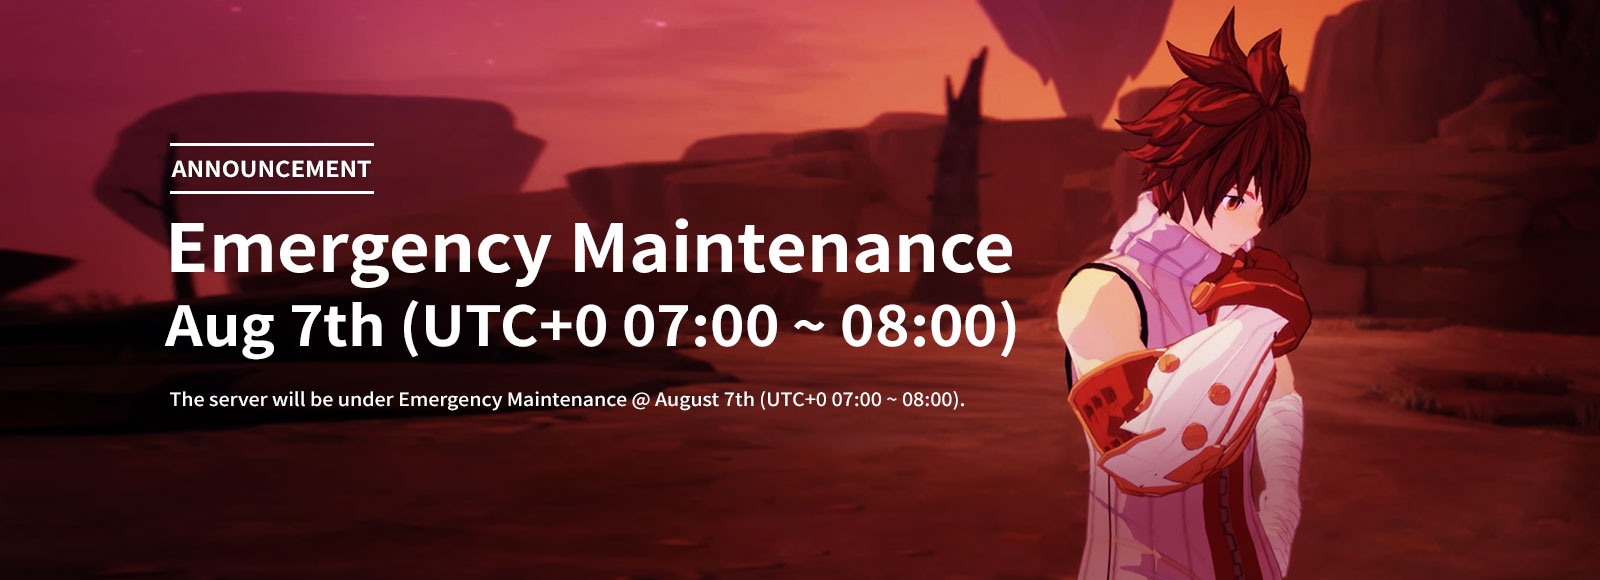 August 7th Emergency Maintenance Announcement